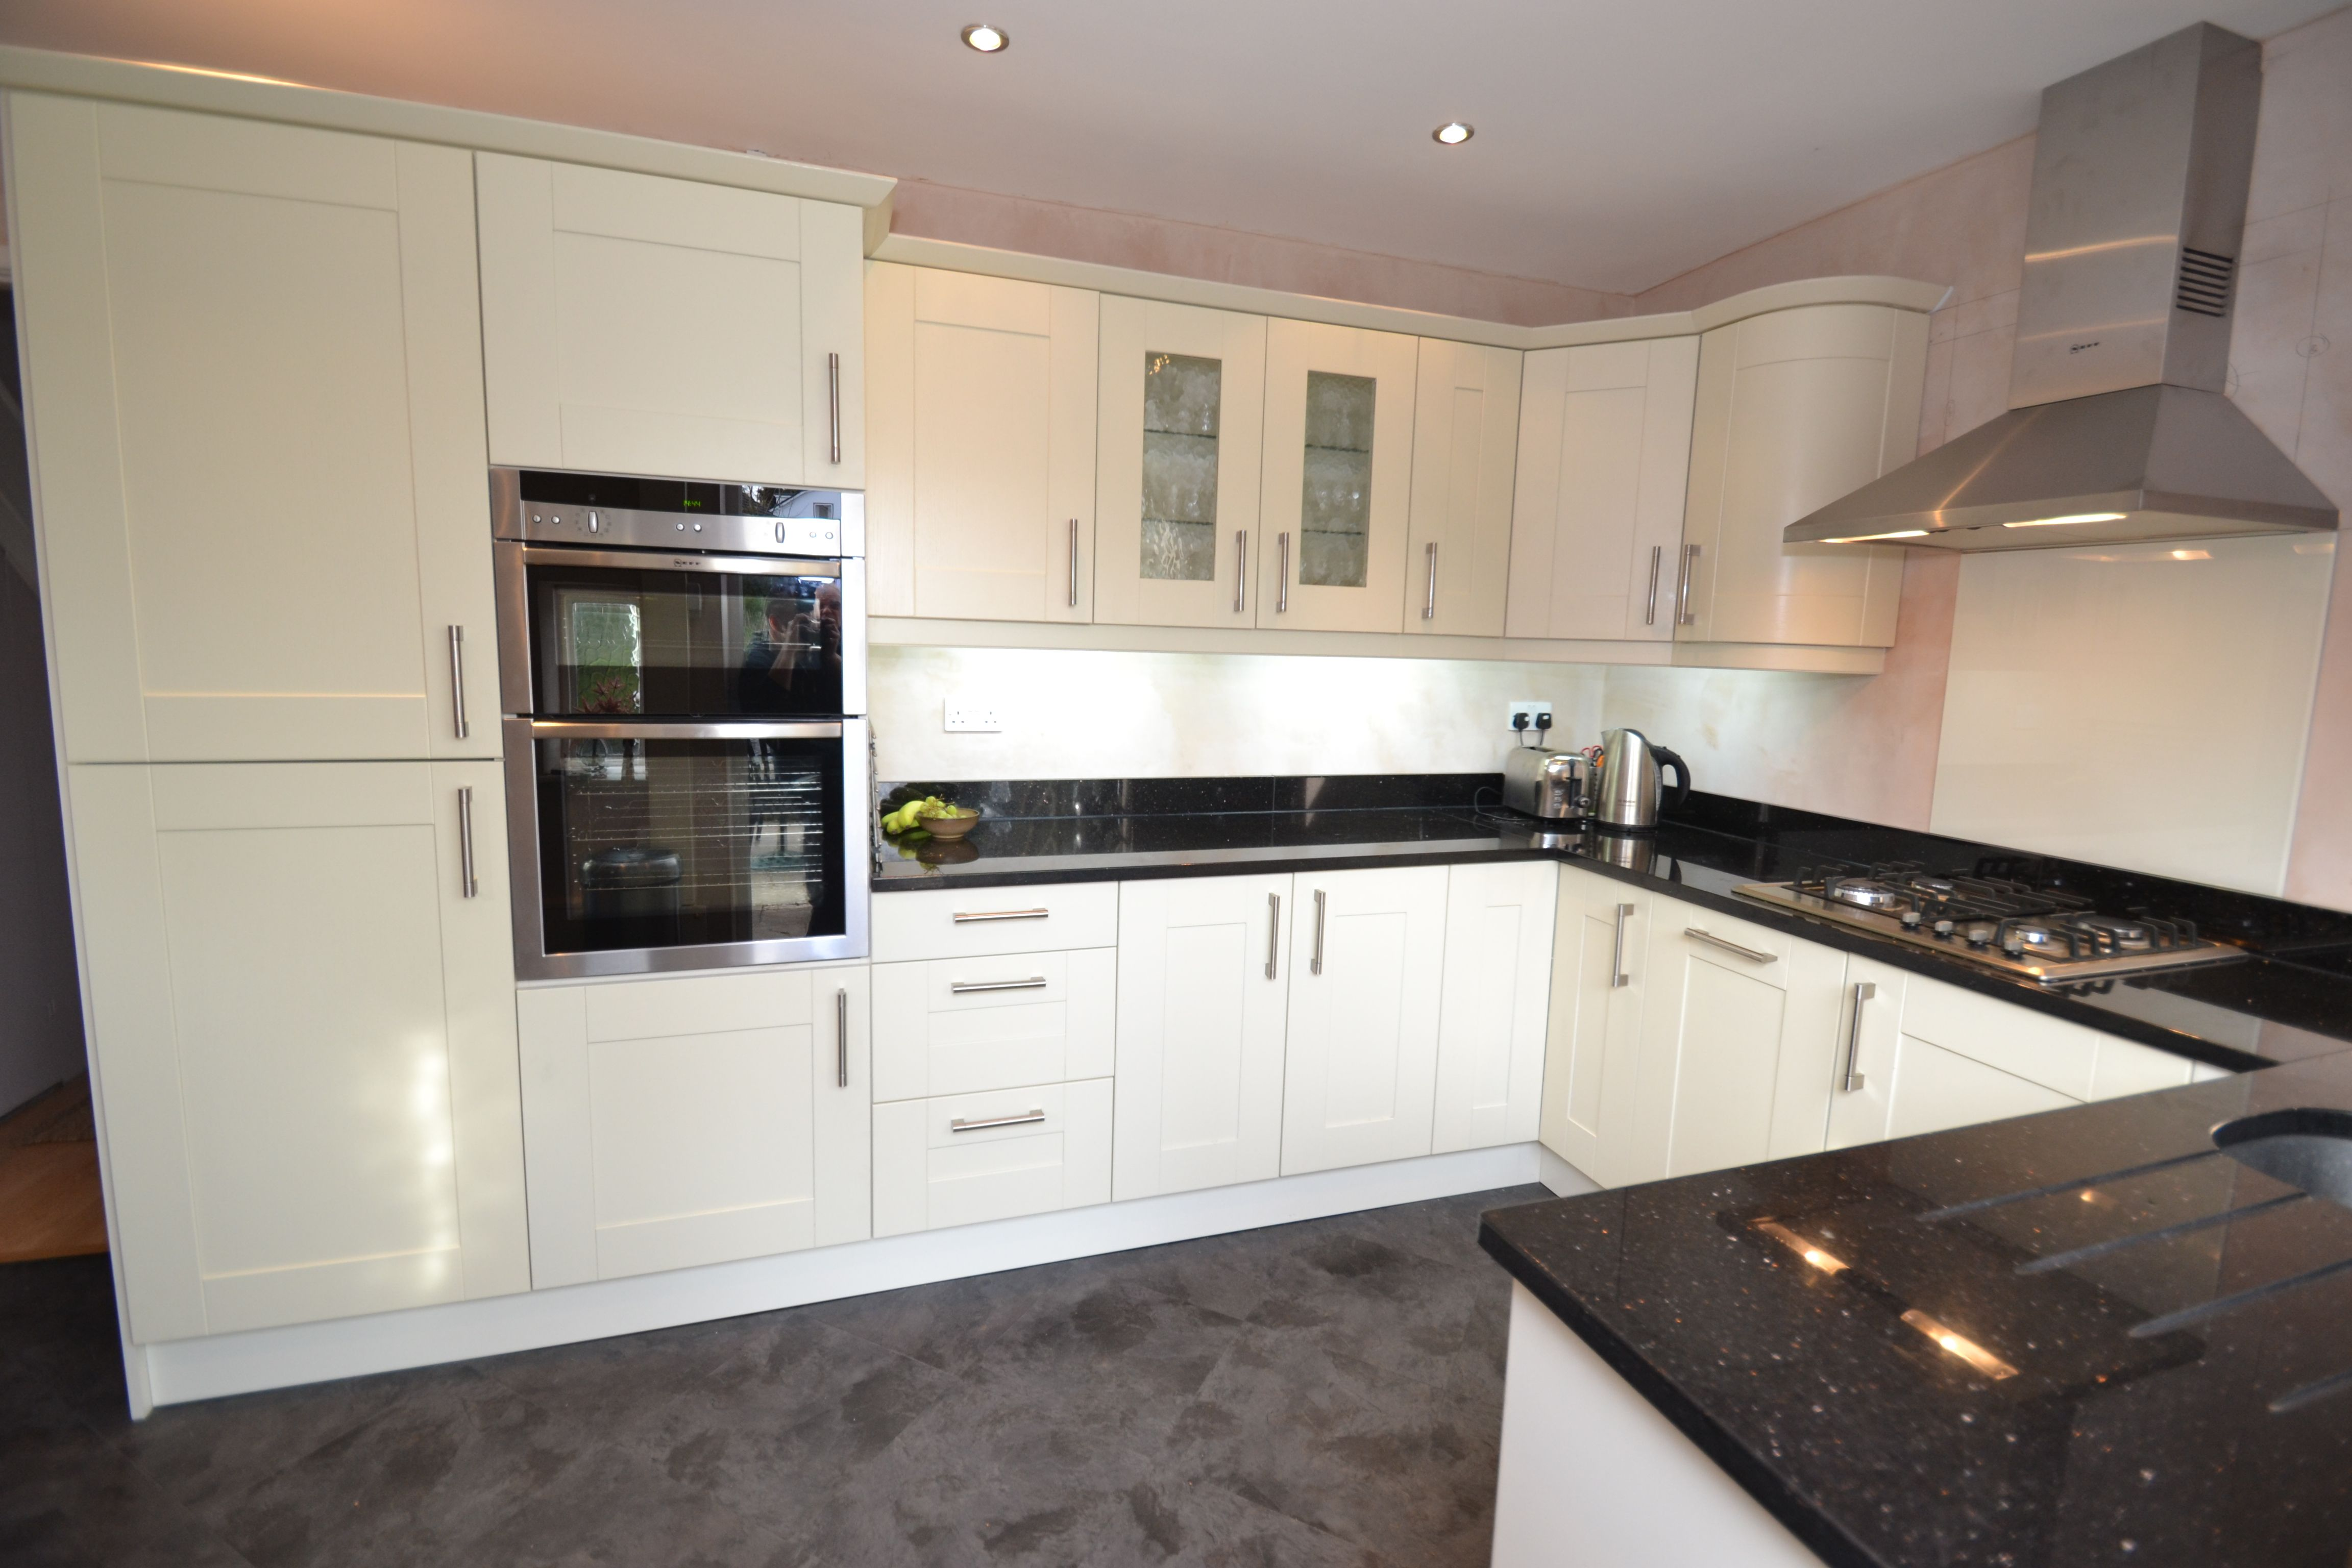 A topfit ivory kitchen with star galaxy granite worktops for a a topfit ivory kitchen with star galaxy granite worktops for a client in wiltshire ivorykitchen graniteworktops granito pinterest ivory kitchen dailygadgetfo Image collections